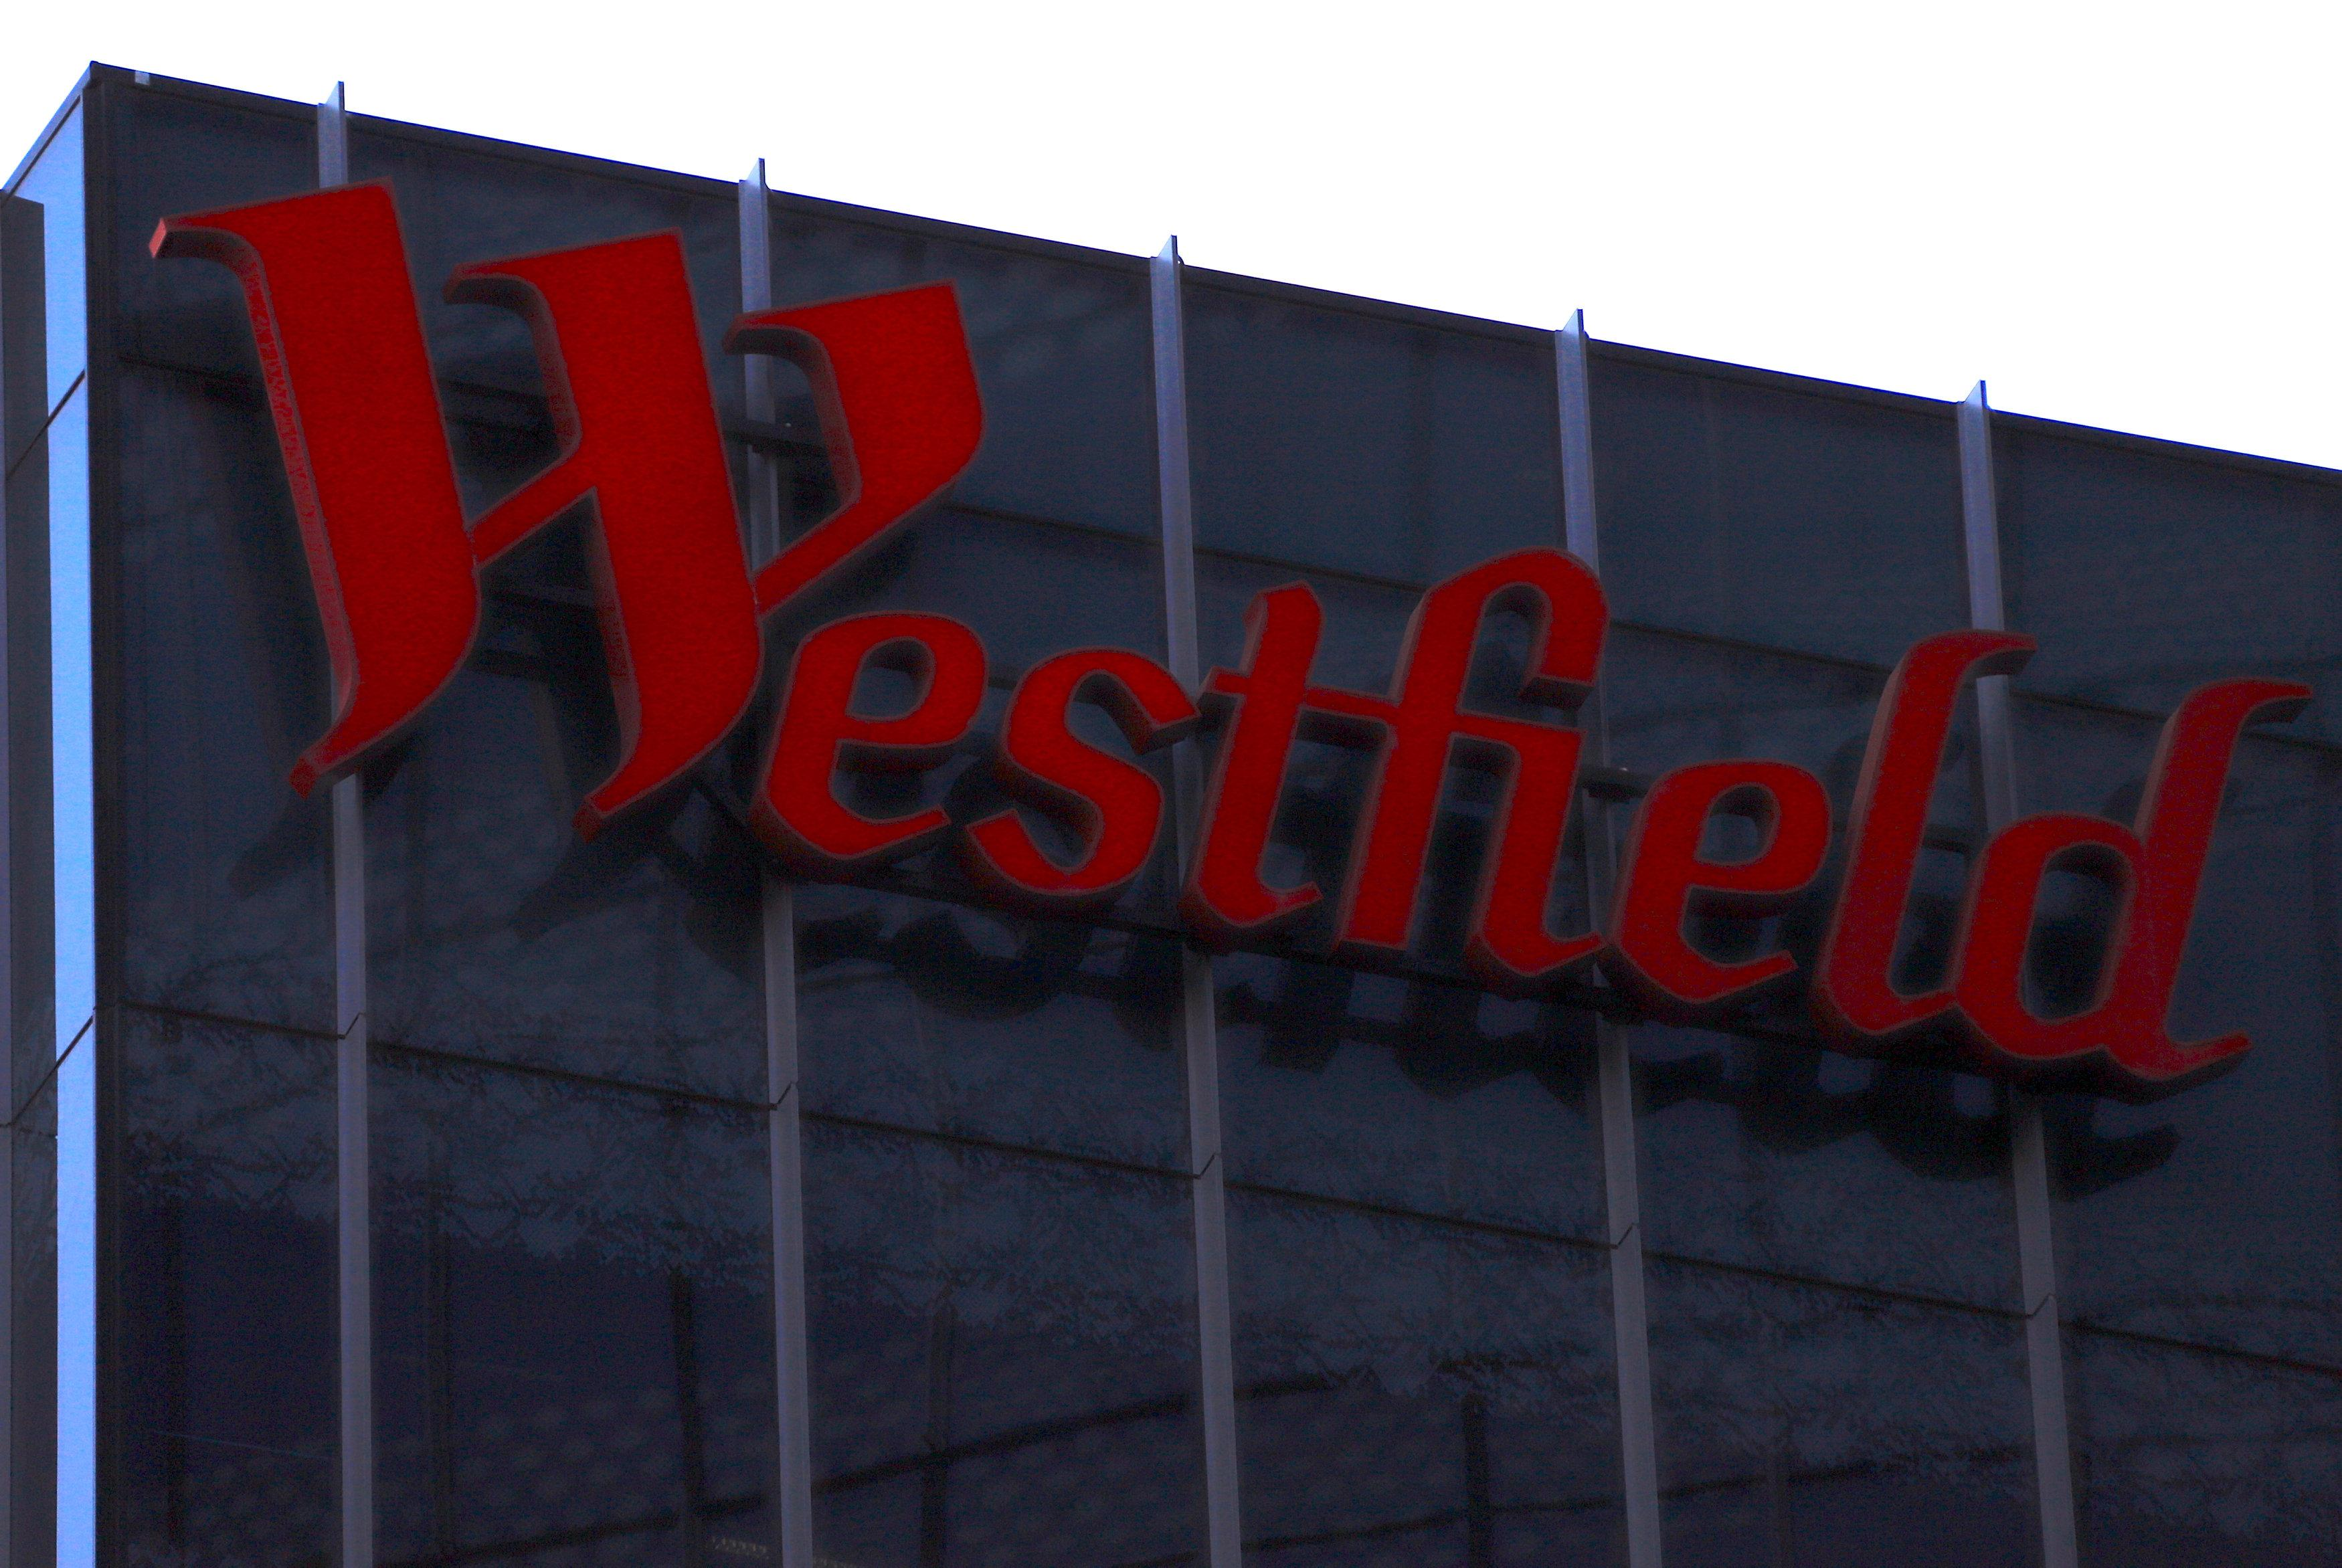 A Westfield Corp sign adorns the side of a building in central Sydney, Australia, December 12, 2017.      David Gray